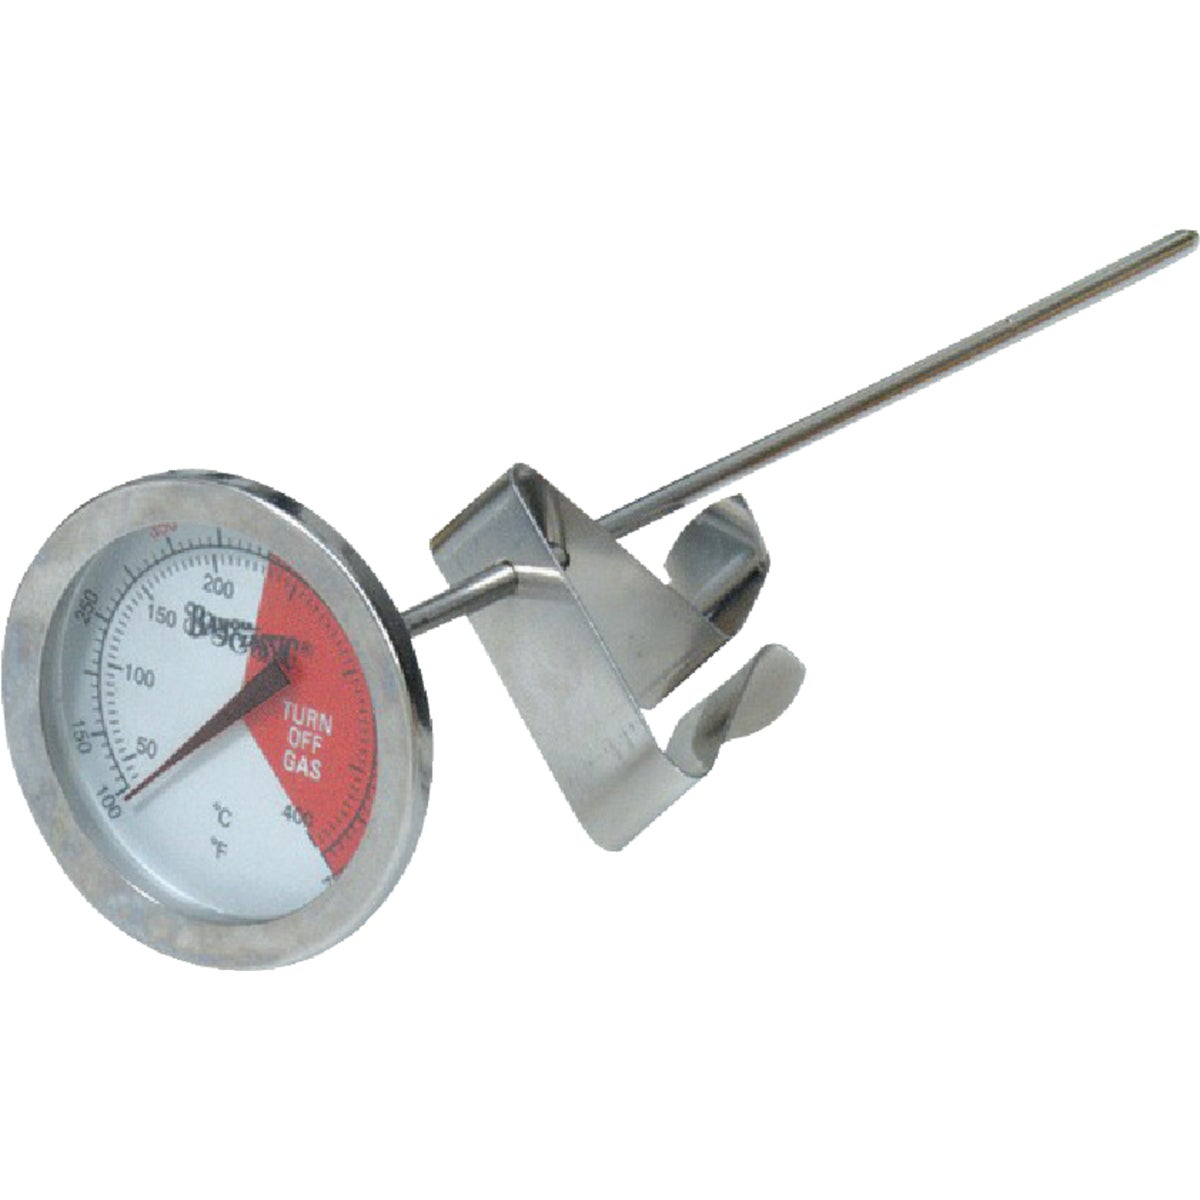 "5"" STAINLESS THERMOMETER - 5020 by Barbour Intl"